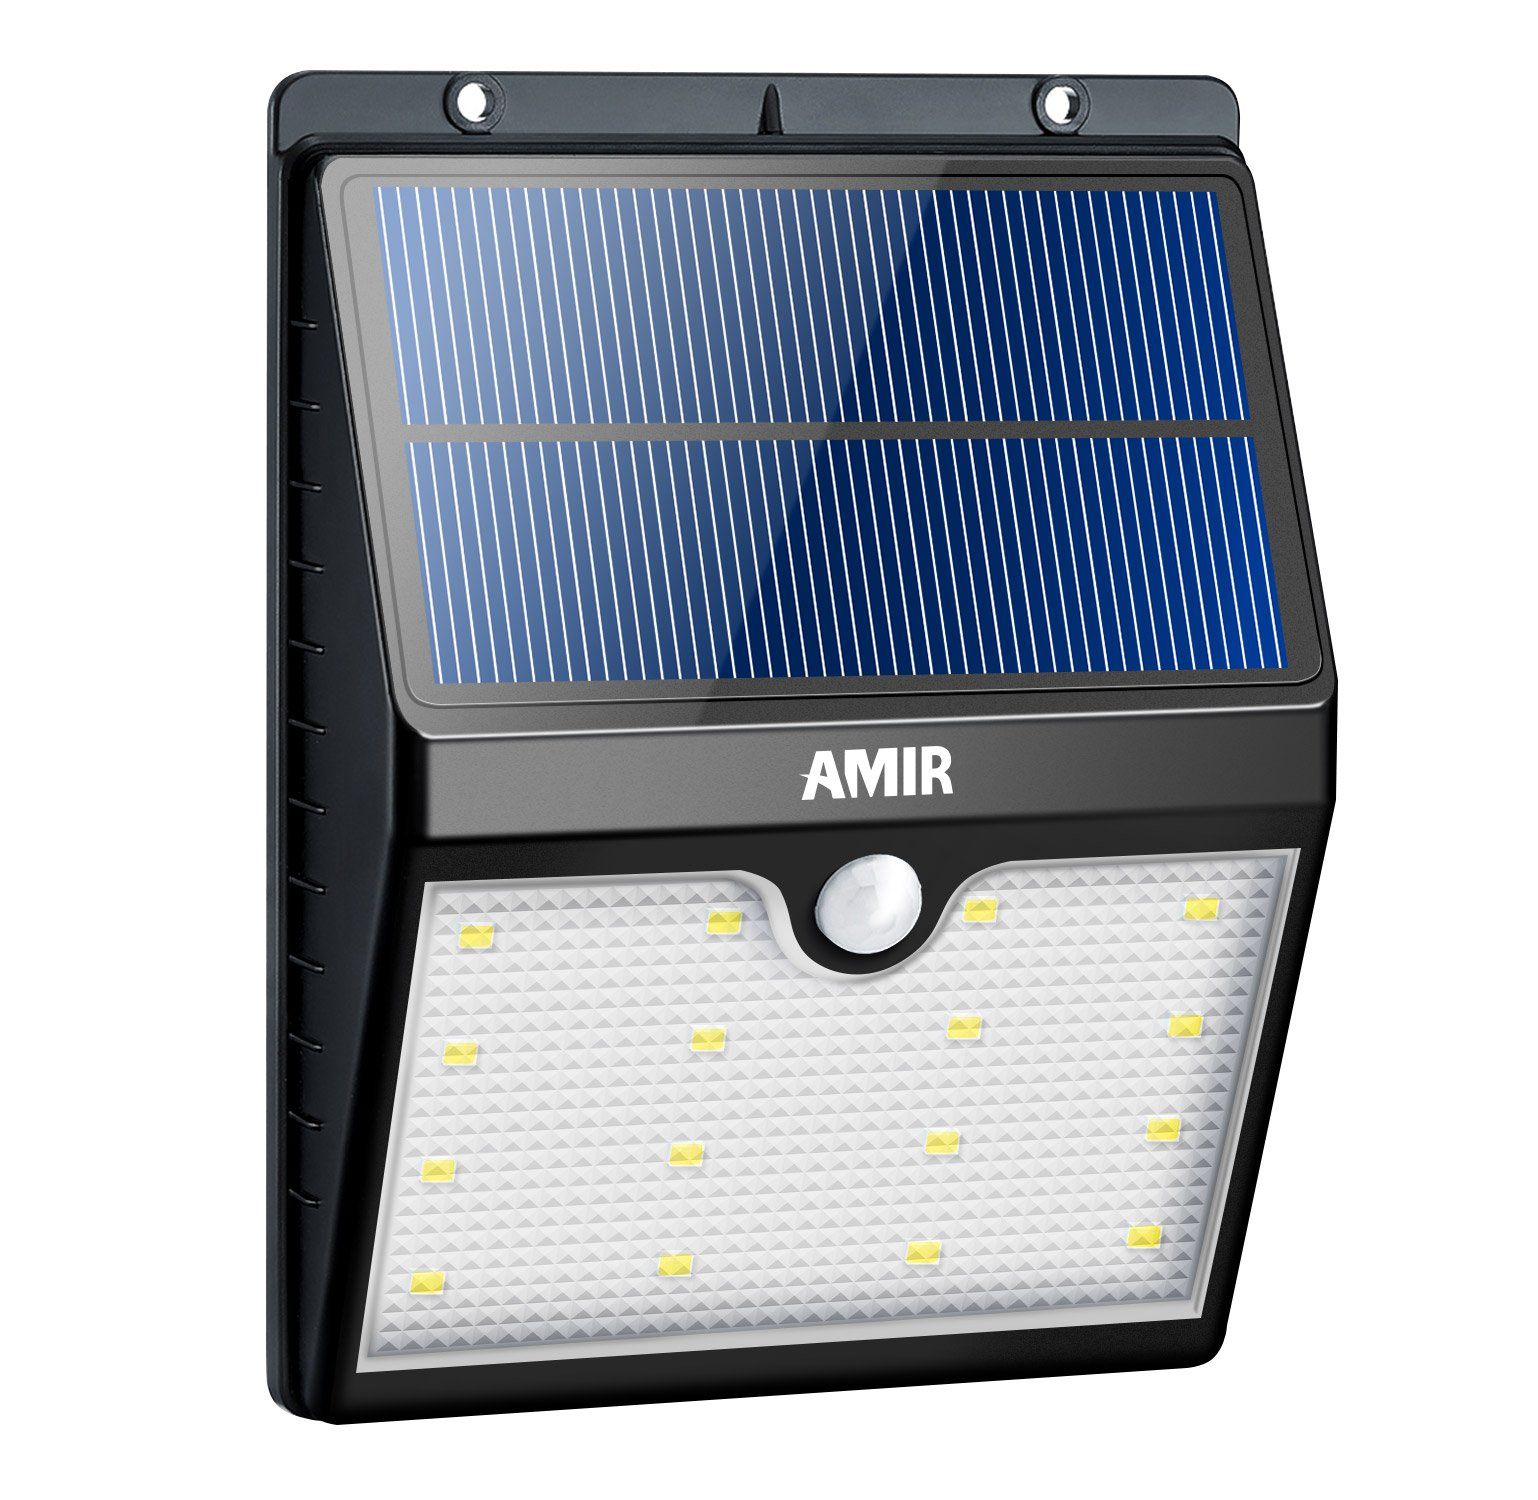 AMIR Solar Lights Outdoor, 16 LED Motion Sensor Wall Light, Waterproof Landscape Lighting, Wireless Solar Security Light, Auto On/ Off, for Step, Tree, Patio, Yard, Garden, Driveway, Stairs, Pool Area